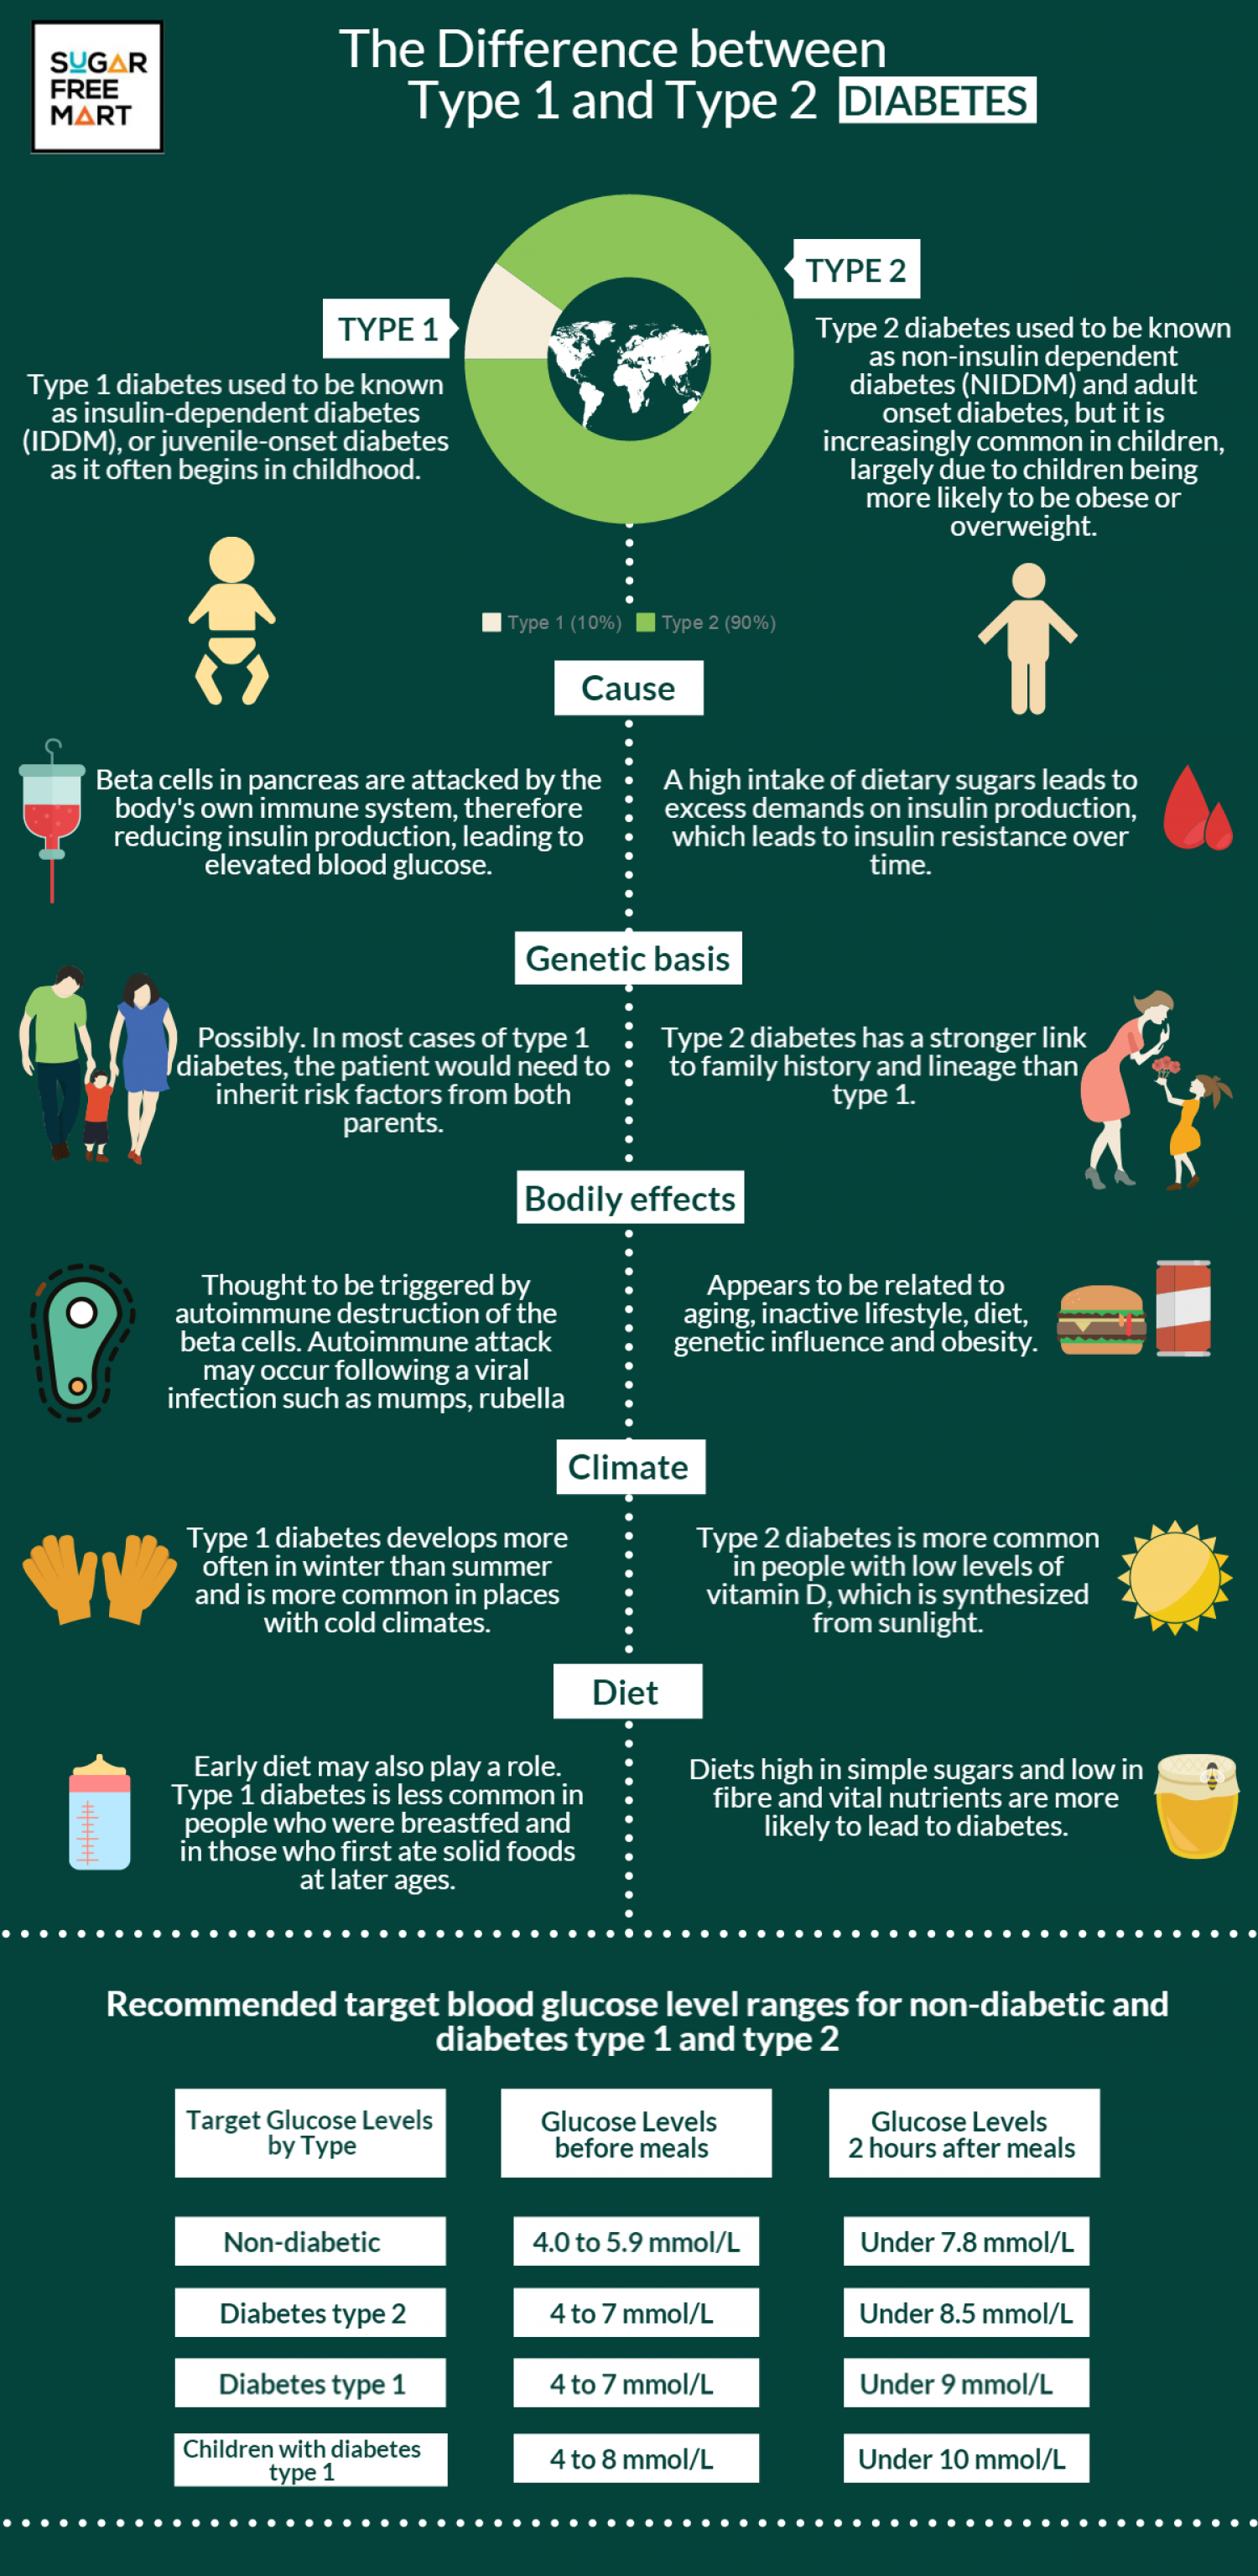 Diabetes: The Difference between Type 1 and Type 2 Diabetes Infographic